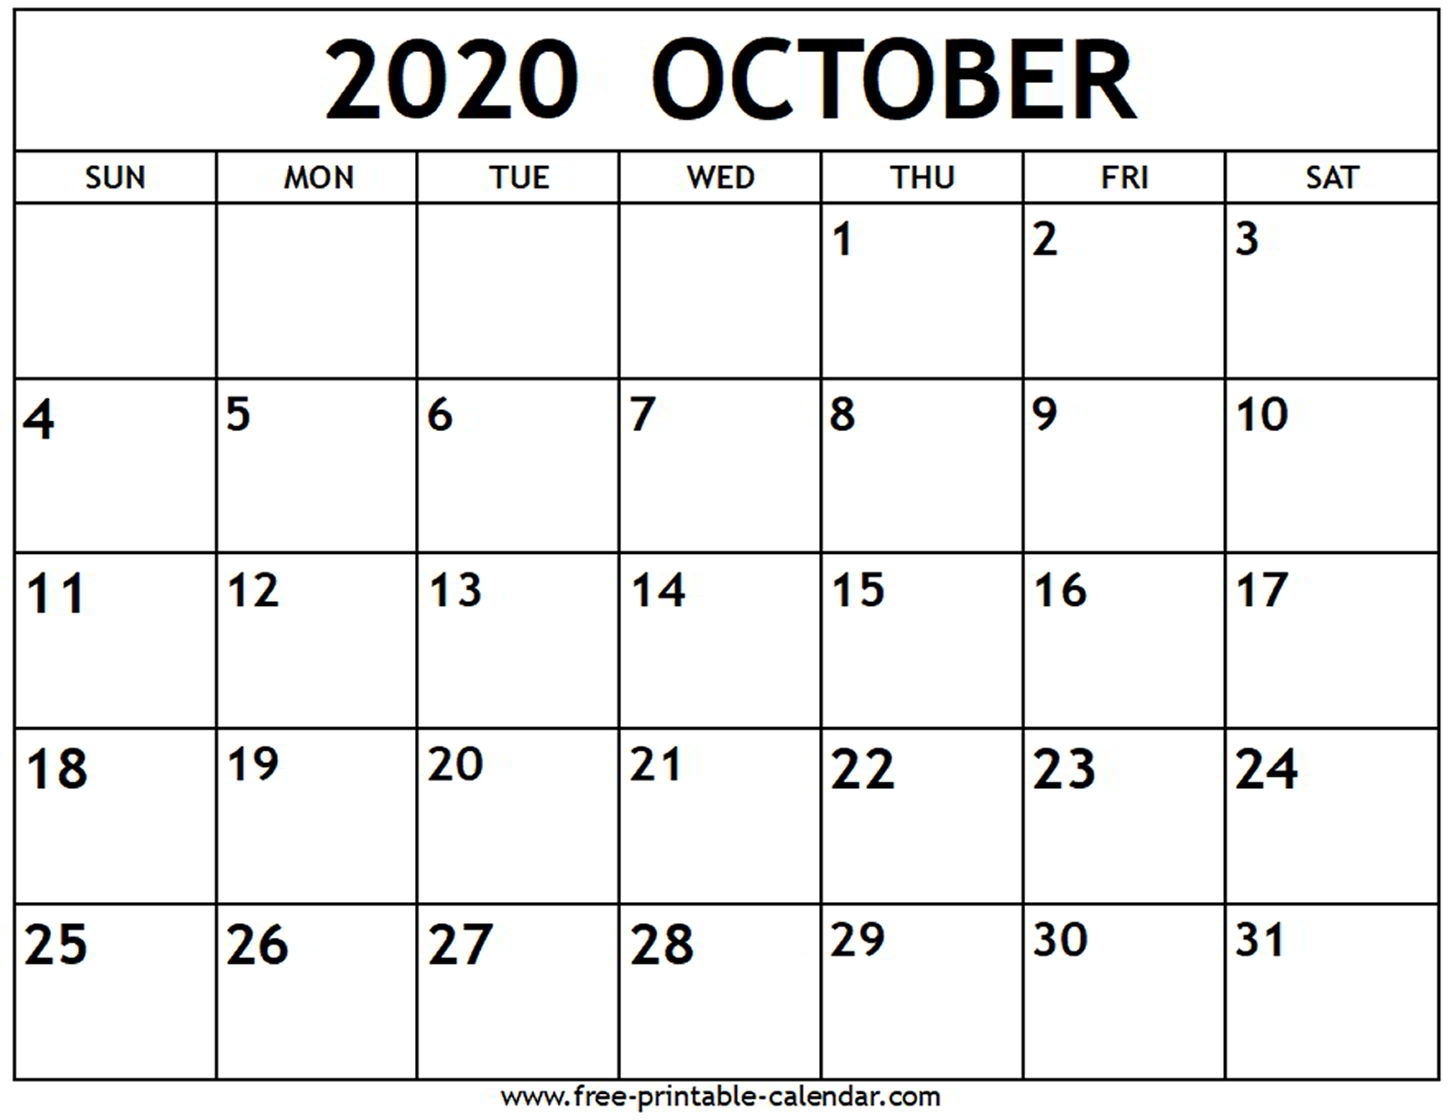 October 2020 Calendar - Free-Printable-Calendar pertaining to 2020 Fill In Calendar Fill In